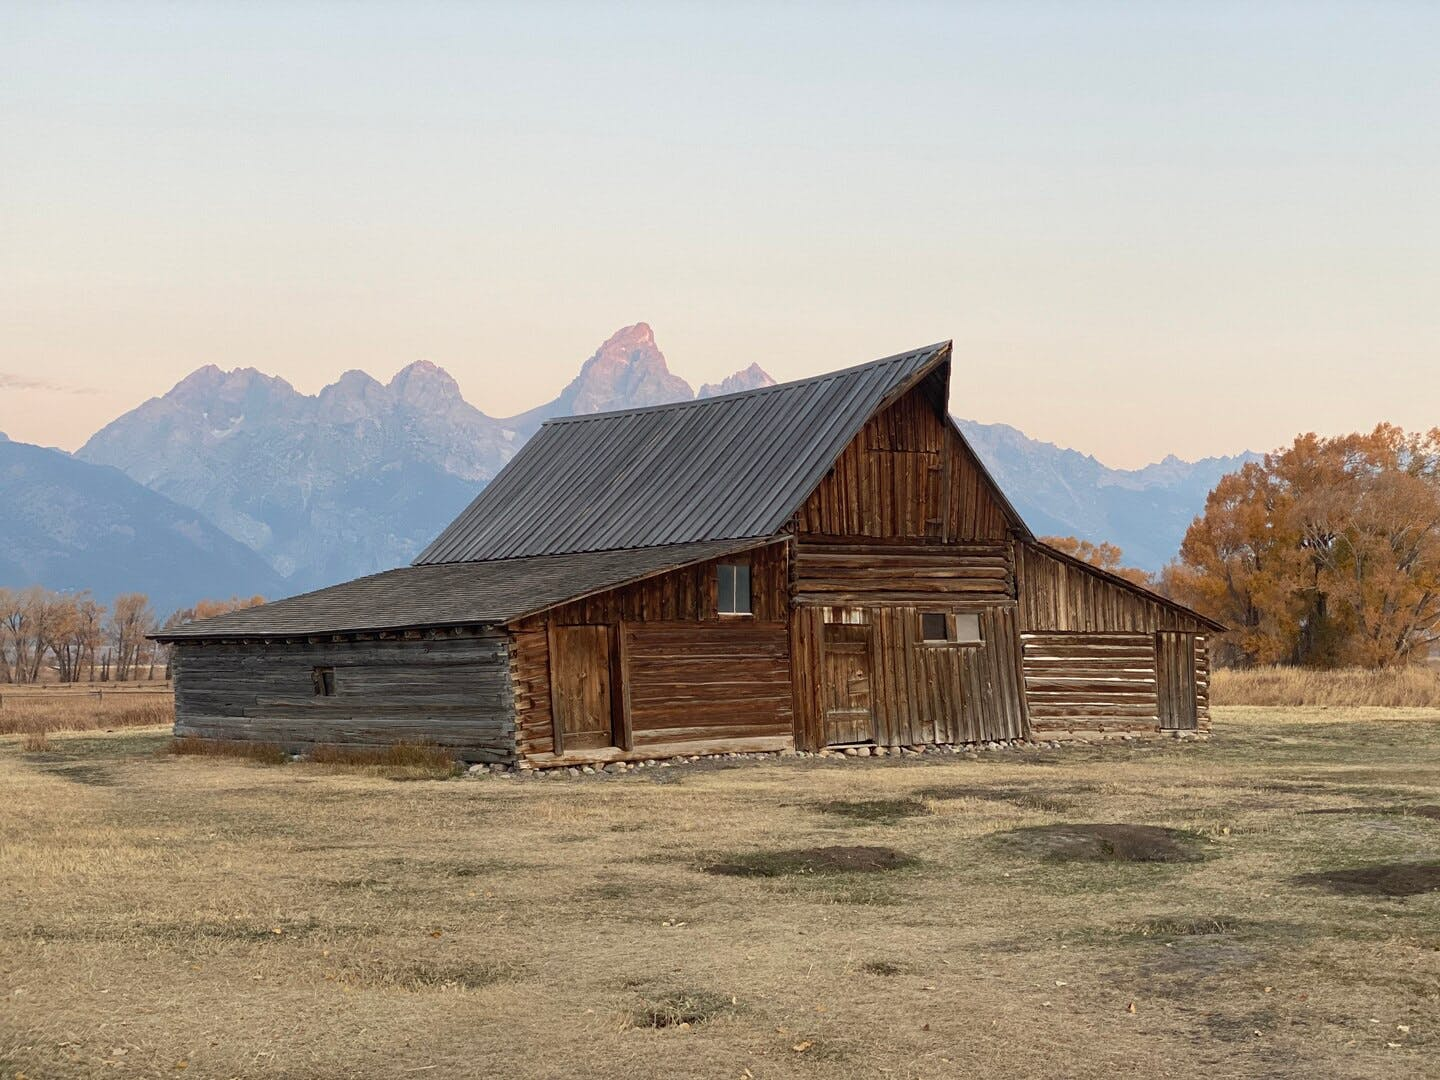 An early morning in Jackson, Wyoming